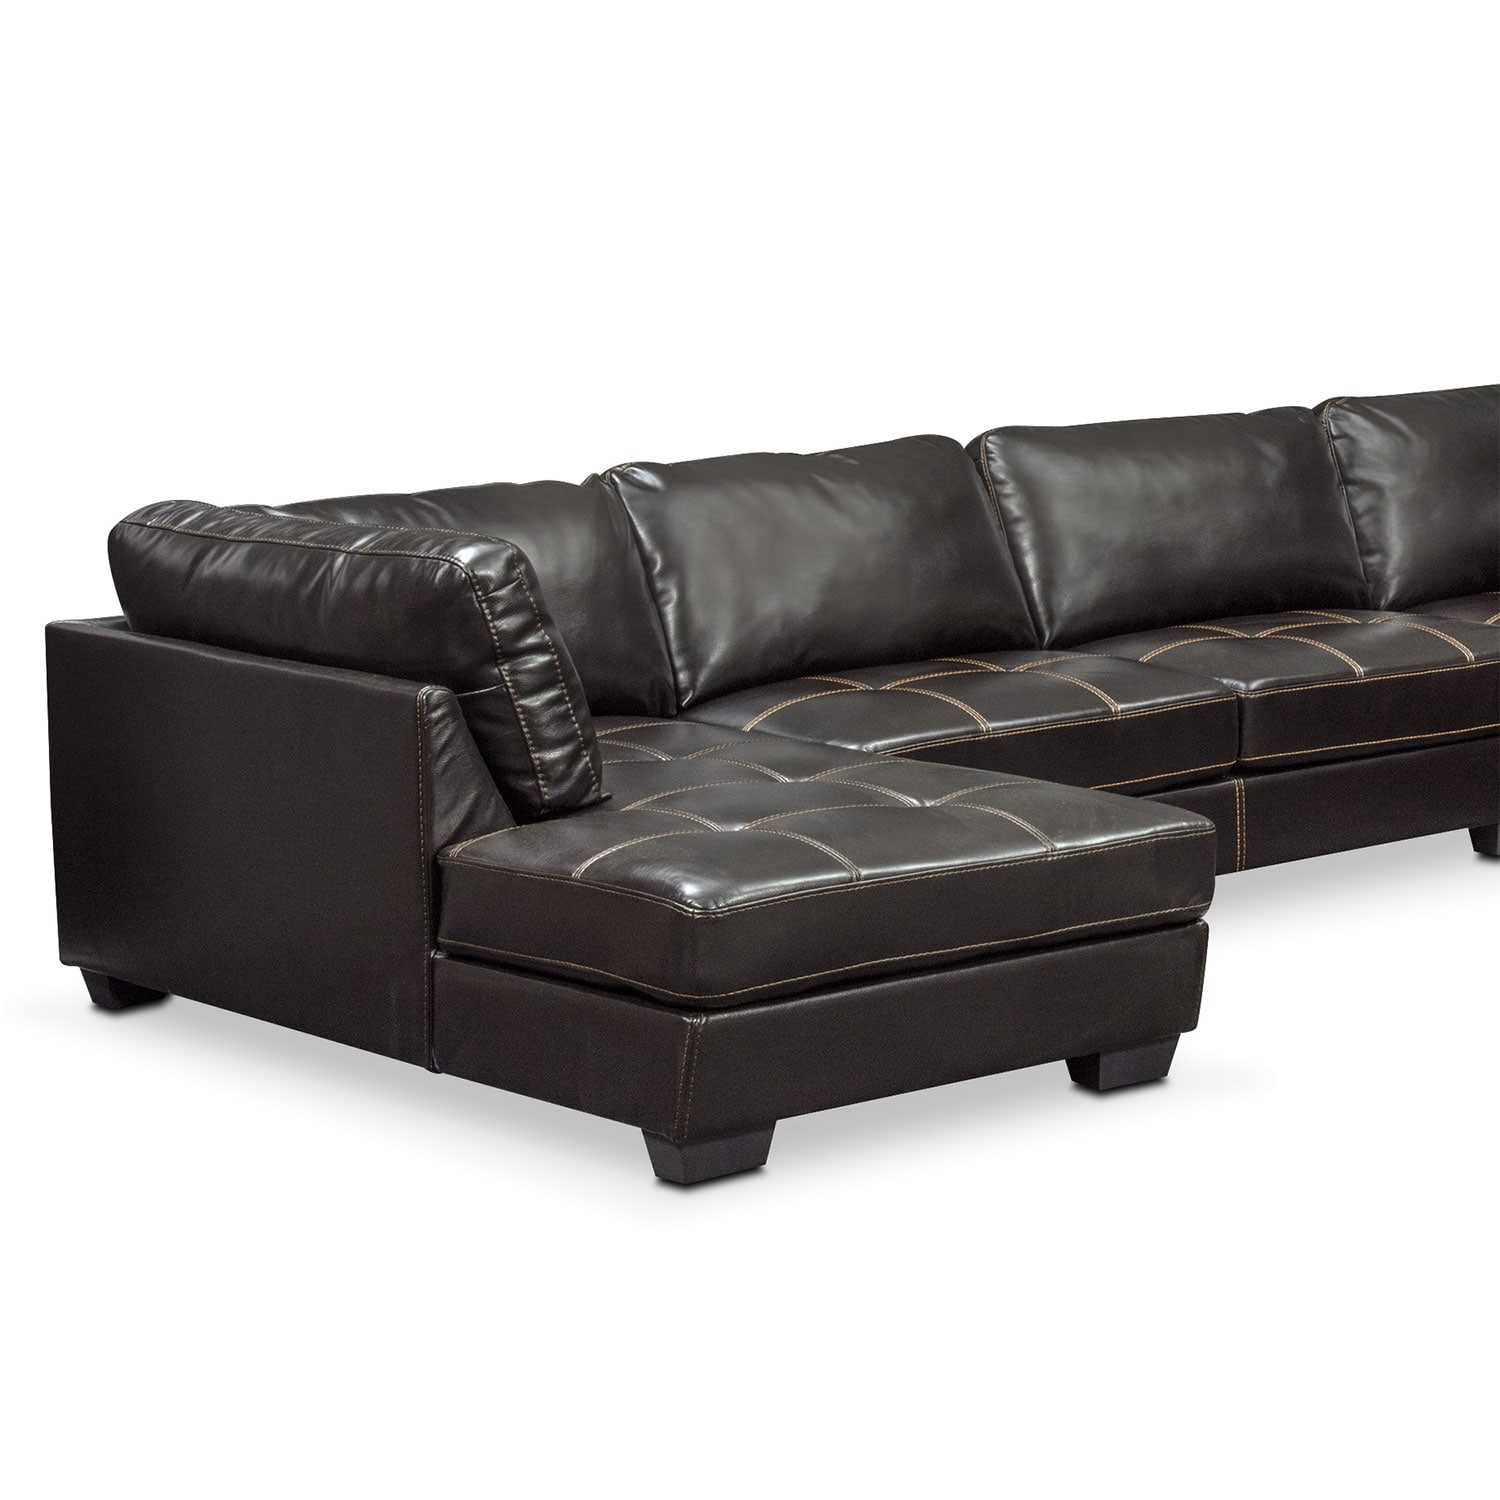 Santana 4 piece sectional with left facing chaise black for 4 piece sectional sofa with chaise